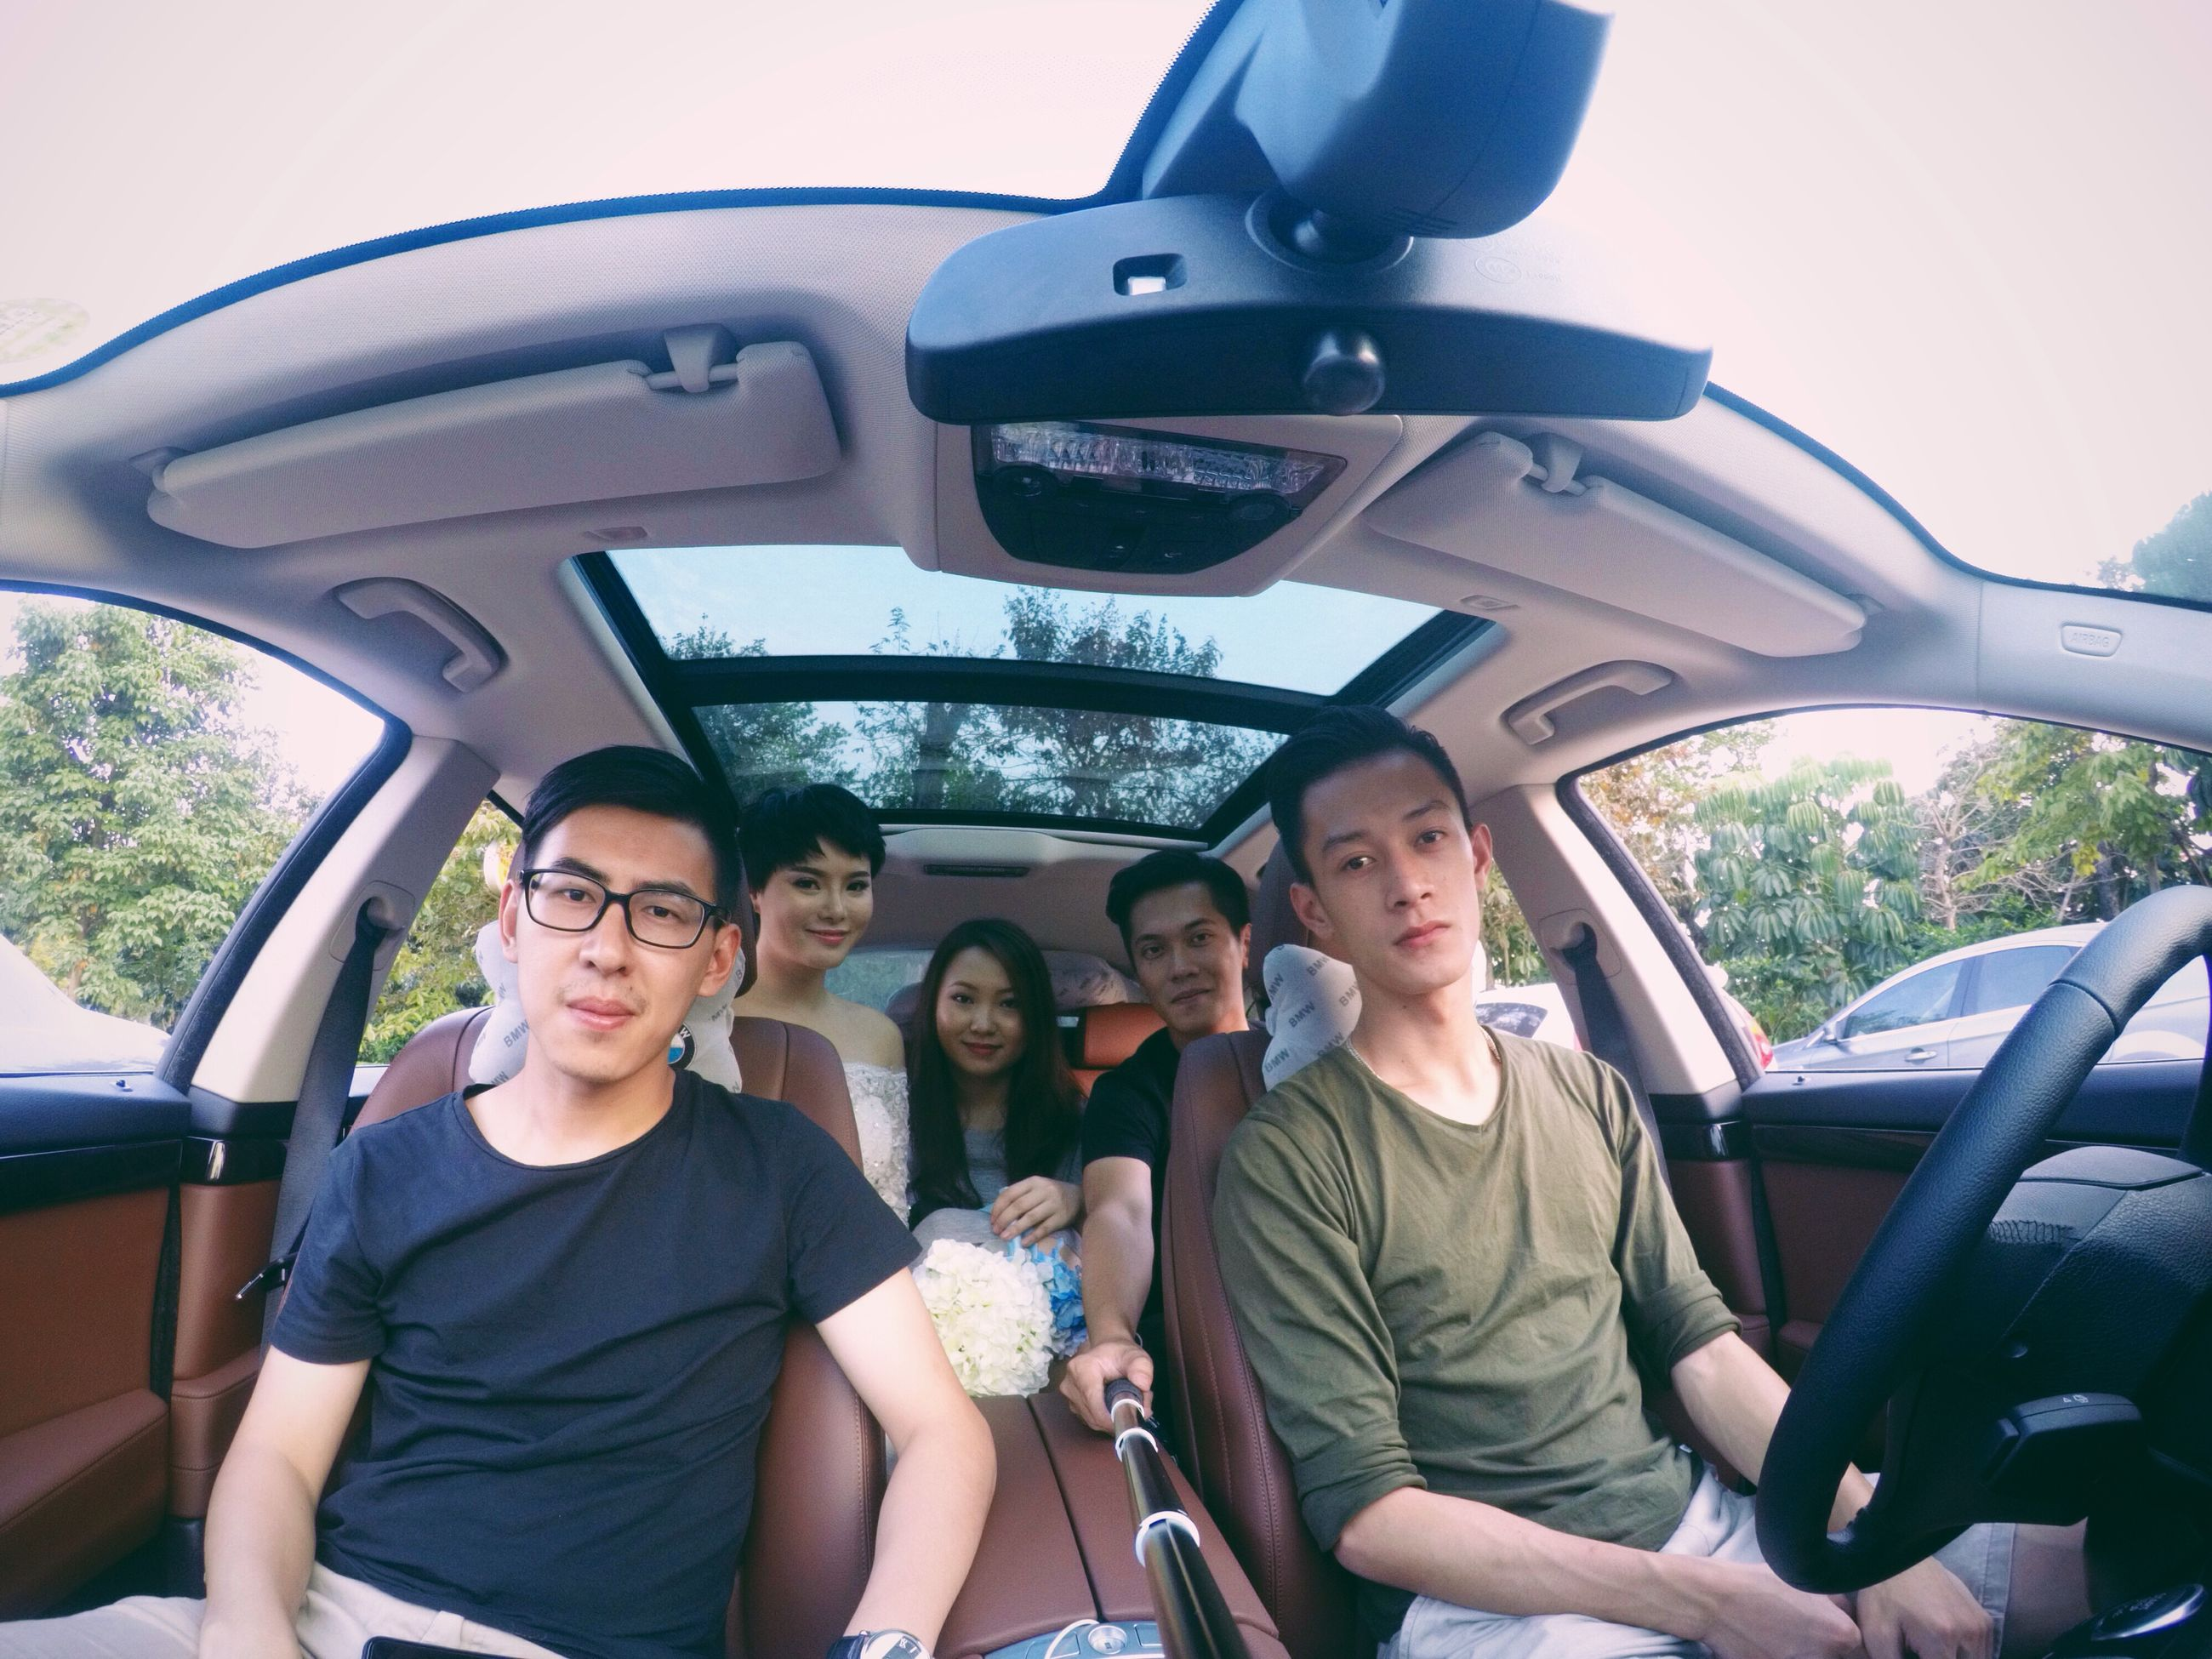 transportation, mode of transport, lifestyles, leisure activity, young adult, travel, land vehicle, casual clothing, person, young men, sitting, vehicle interior, car, men, togetherness, looking at camera, smiling